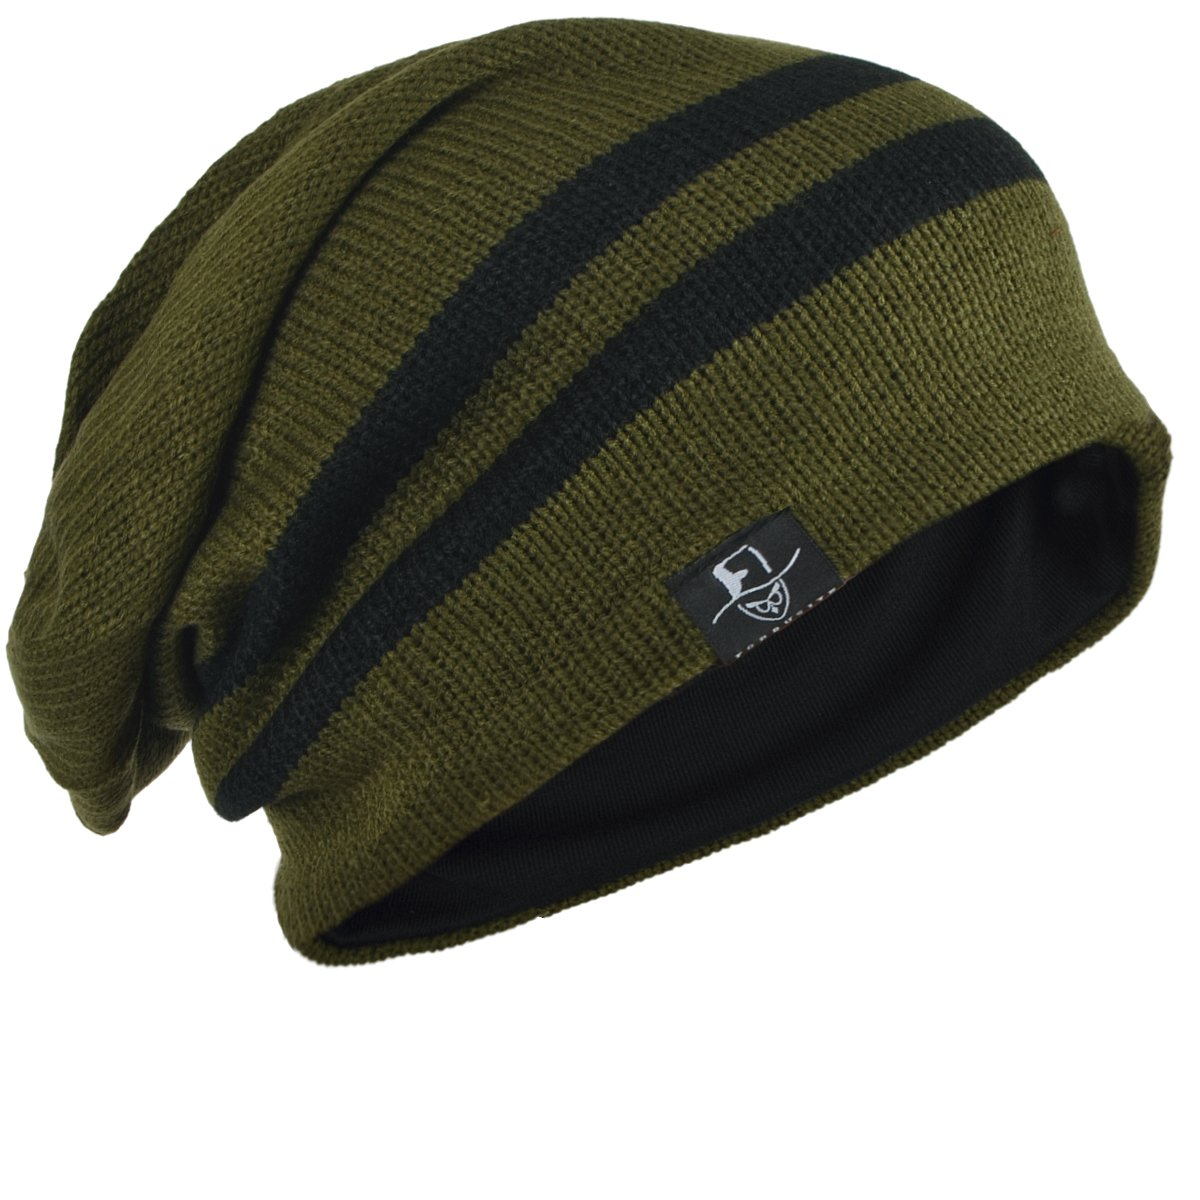 bdafef88e63a8 FORBUSITE Chic Men Baggy Beanie Slouchy Knit Skull Cap Hat (Army Green)   Amazon.co.uk  Clothing